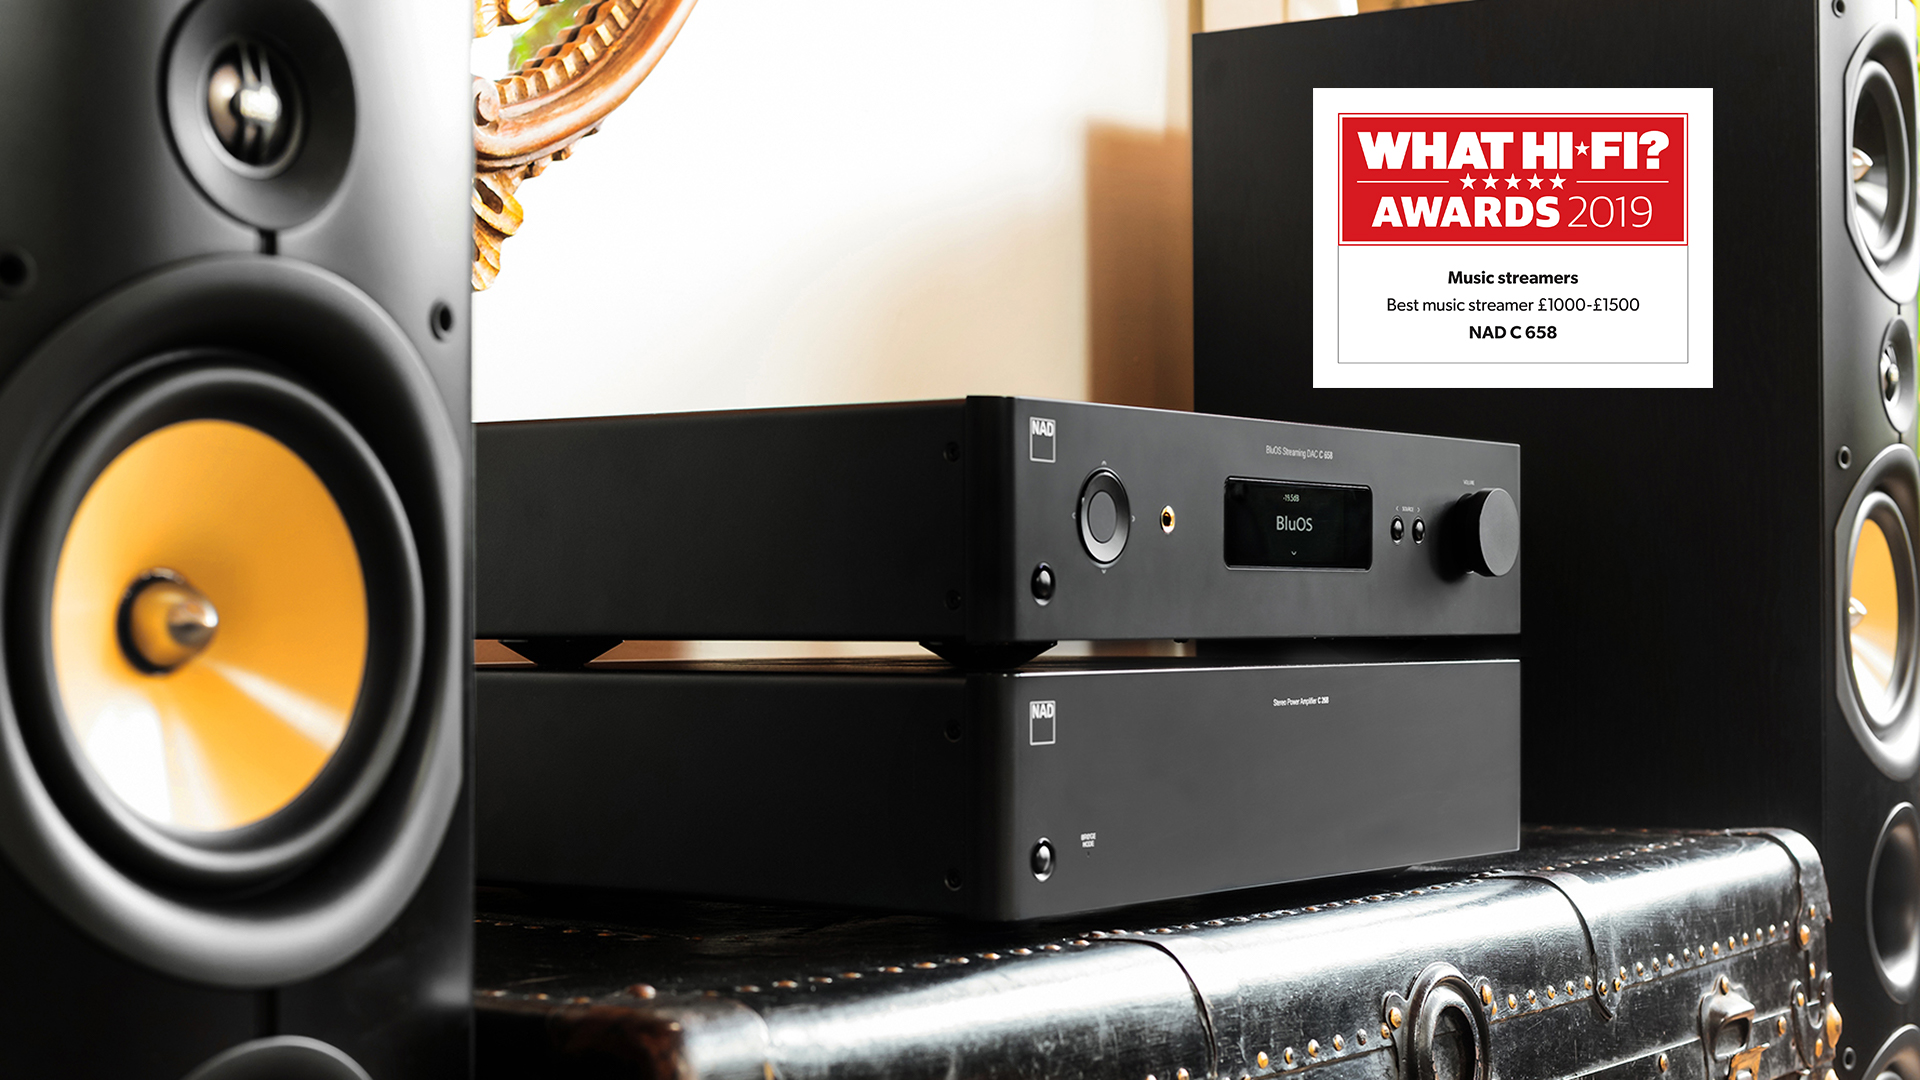 NAD C 658 What Hi-Fi award 2019